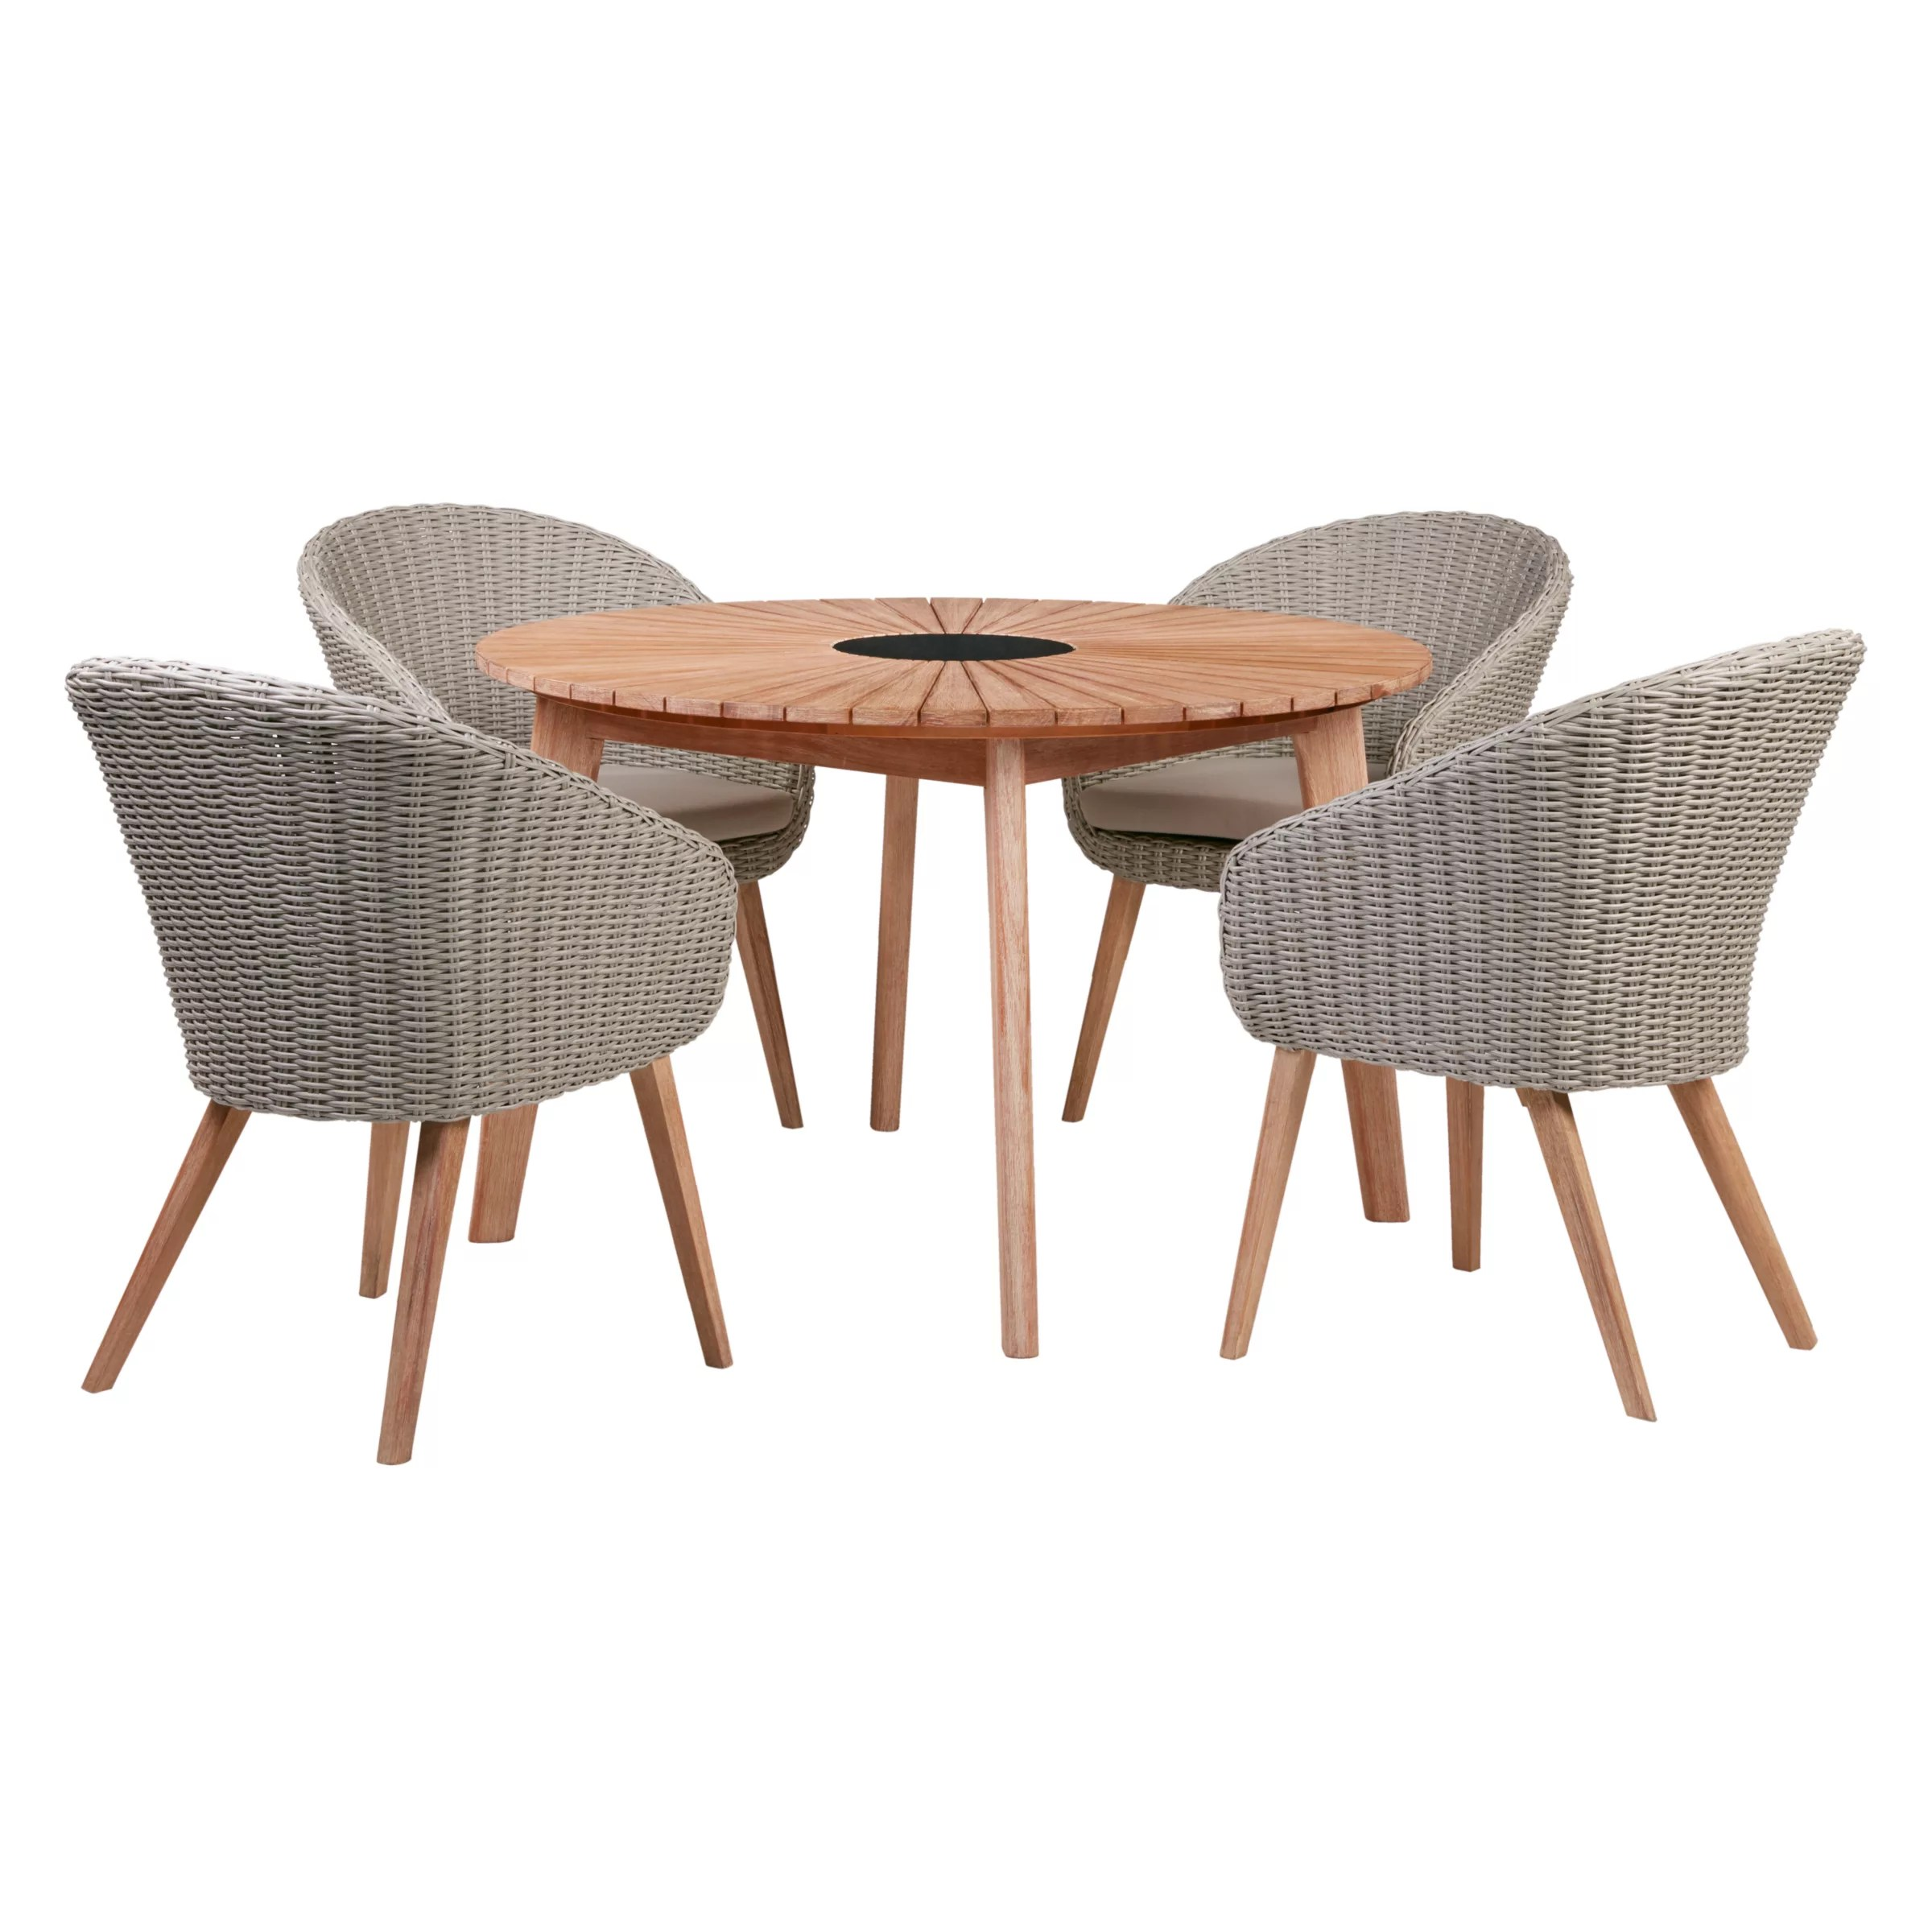 4 seater table and chairs childrens with arms john lewis sol round garden dining